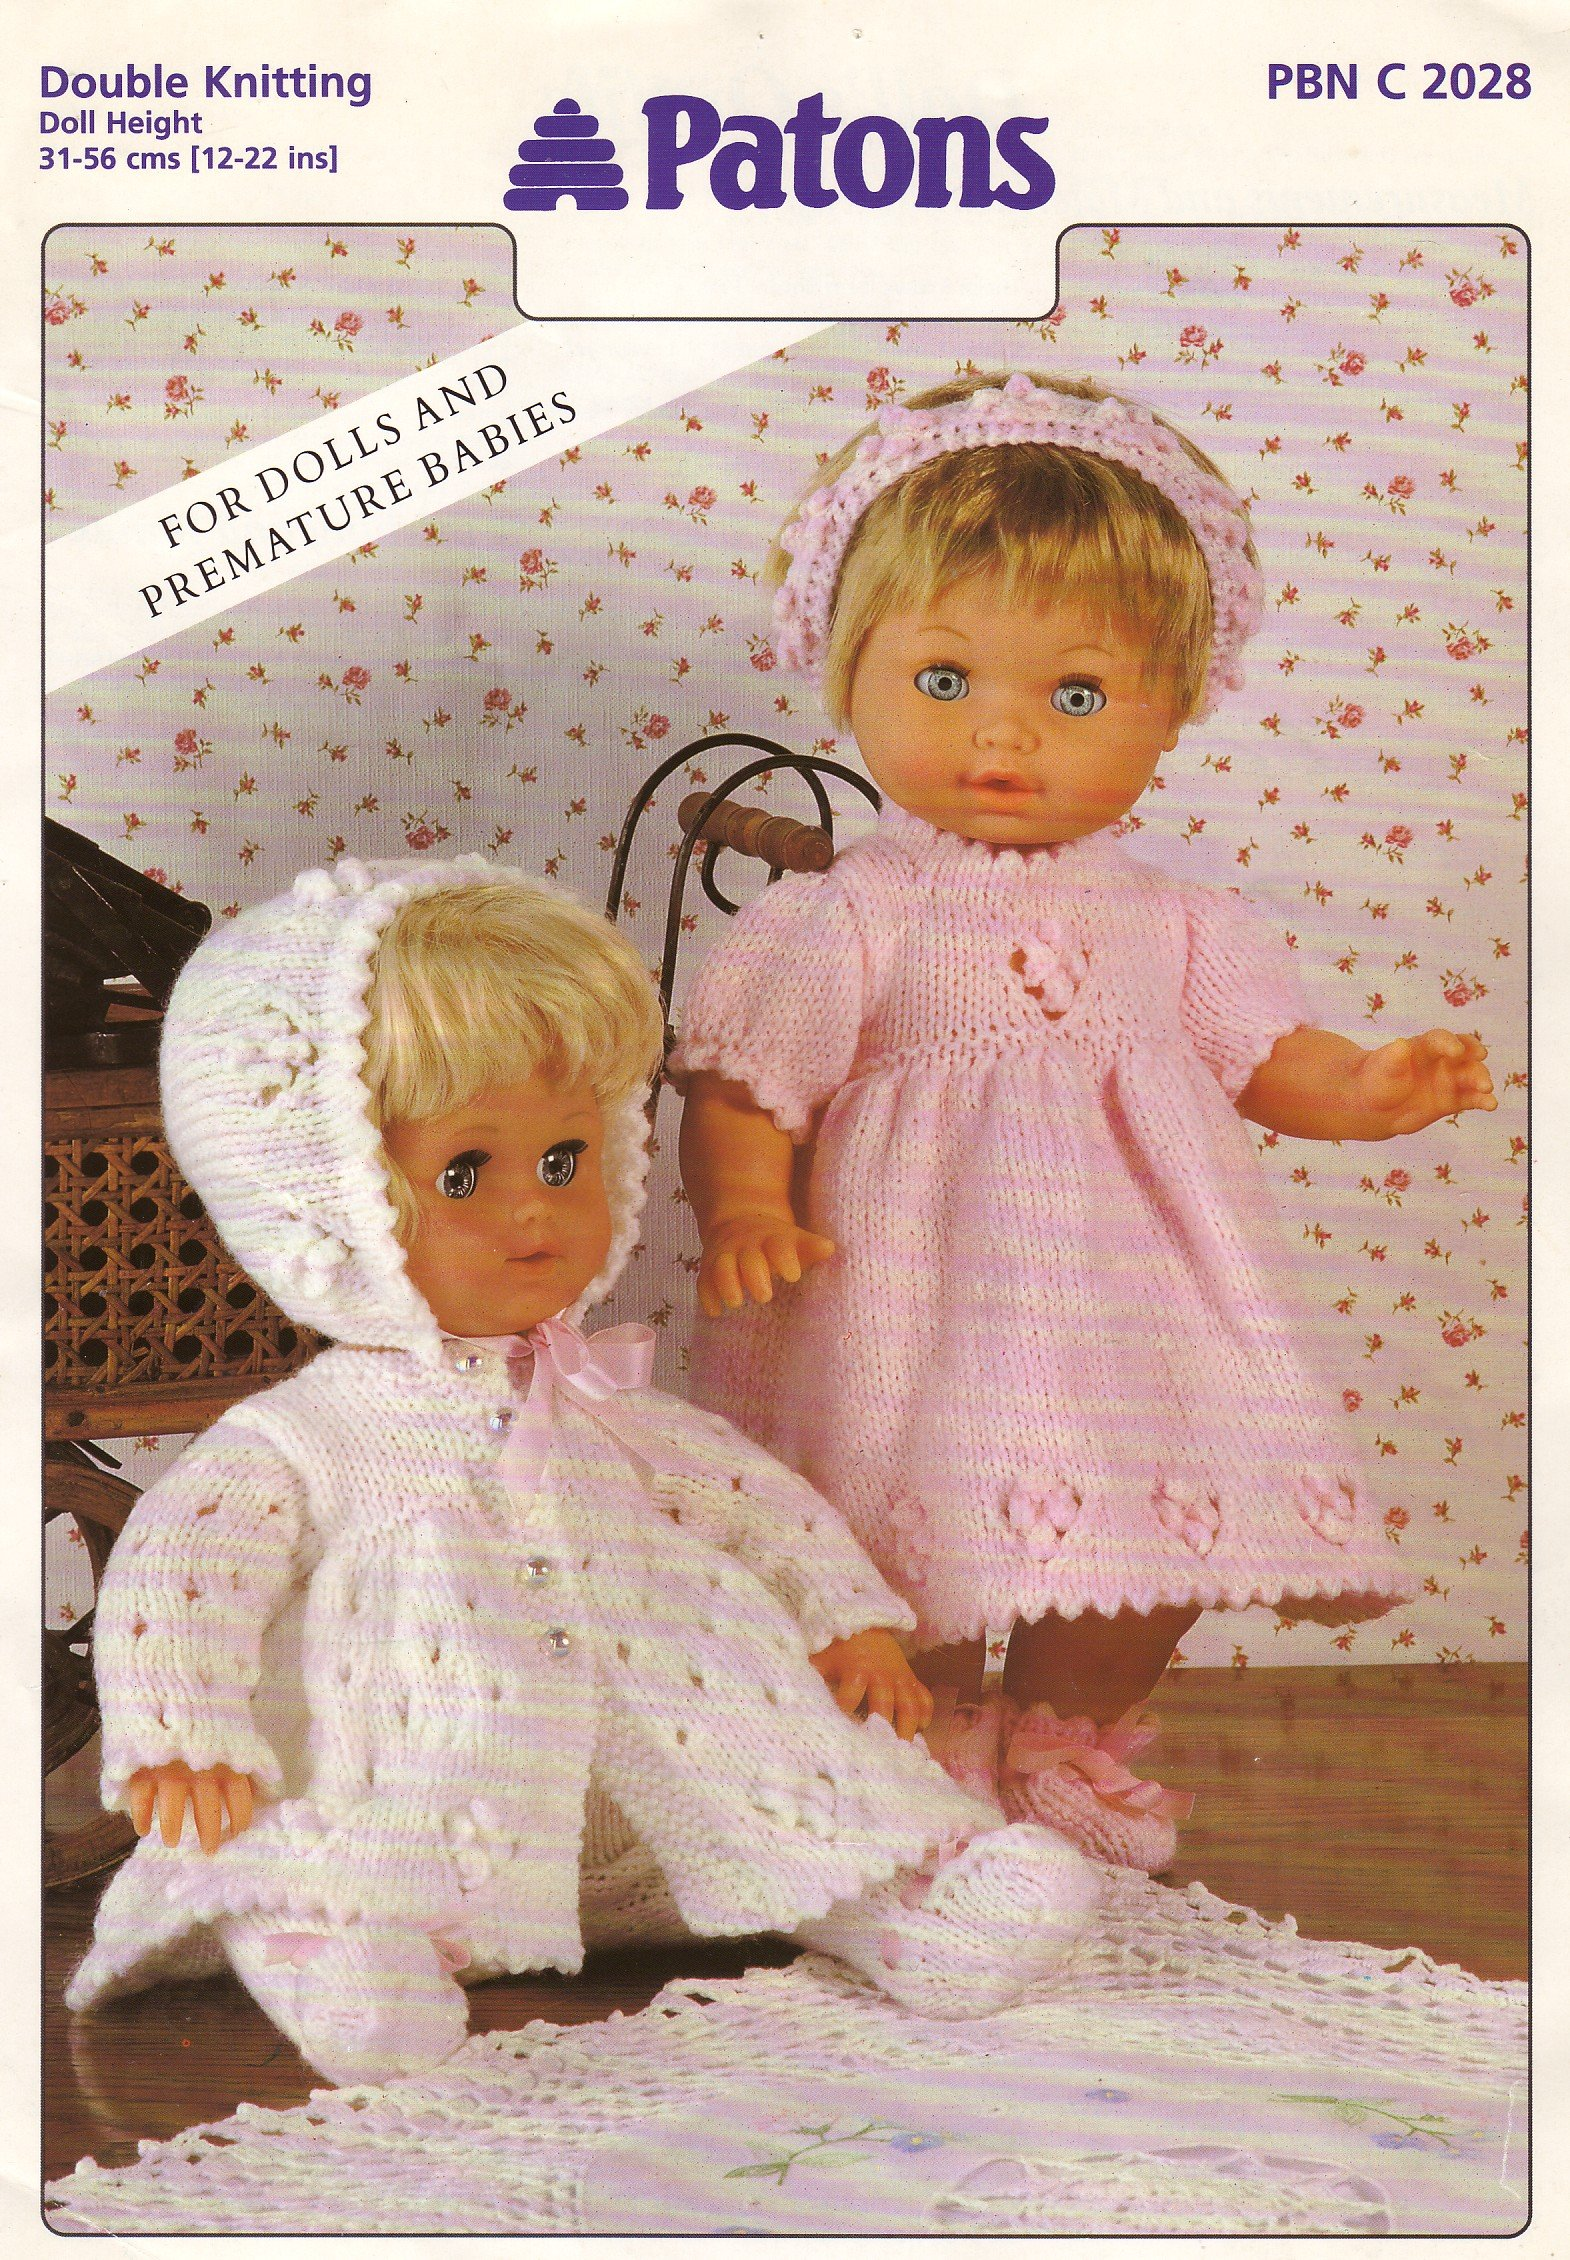 Patons Dolls Clothes Knitting Pattern: For Dolls and Premature ...